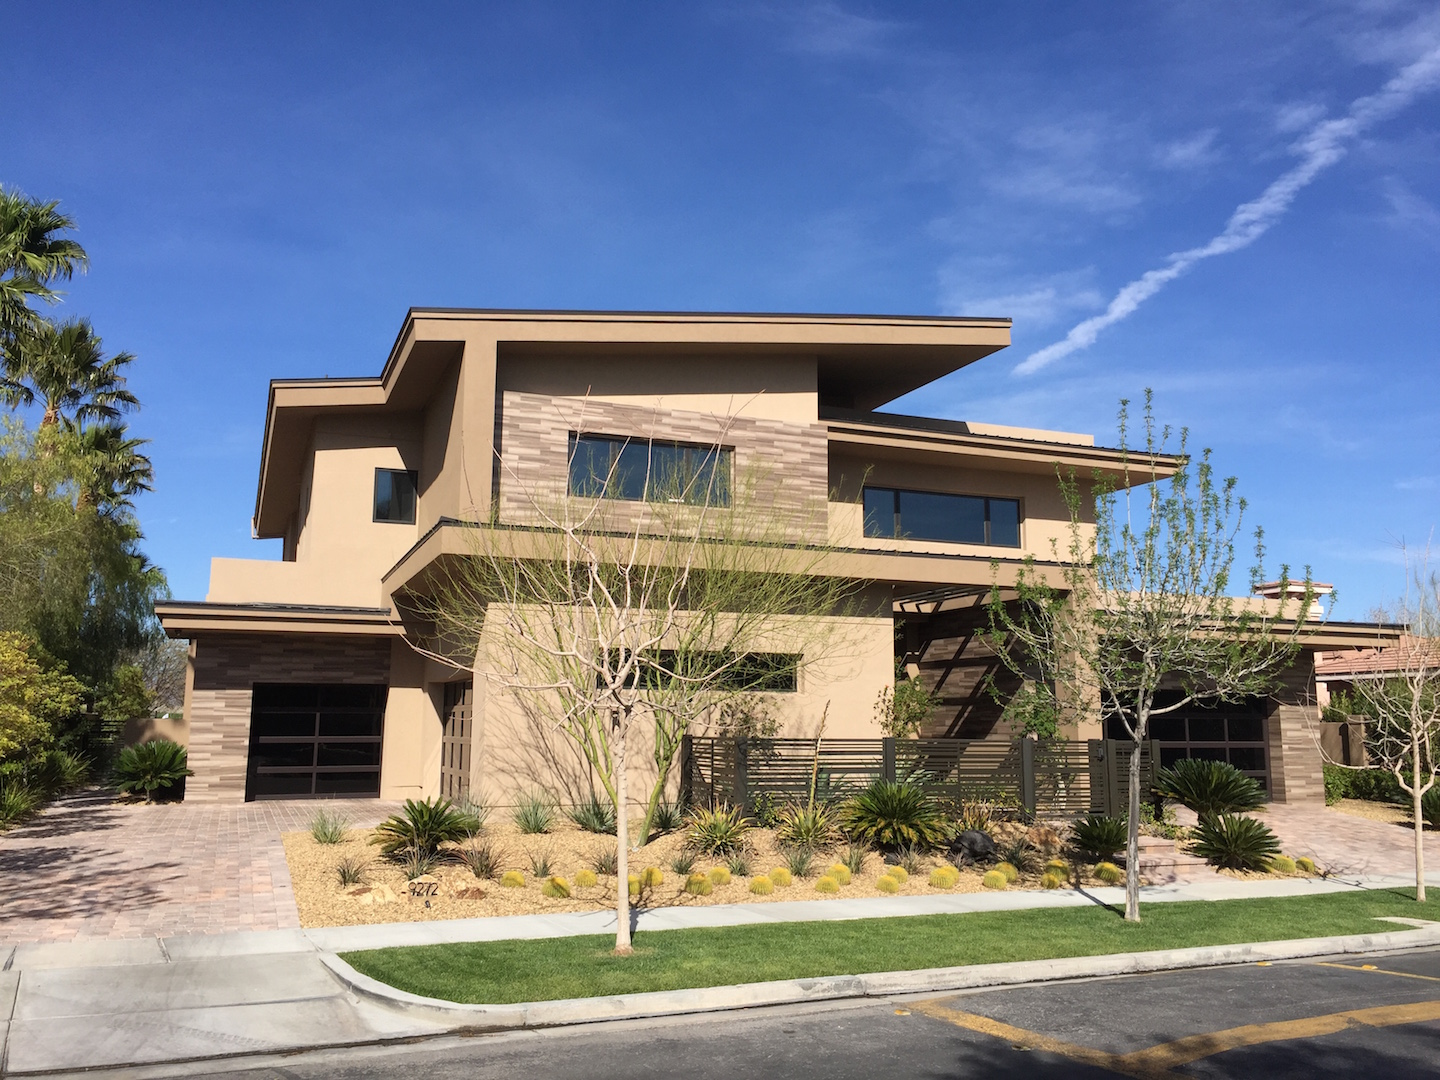 Las vegas luxury homes for lease